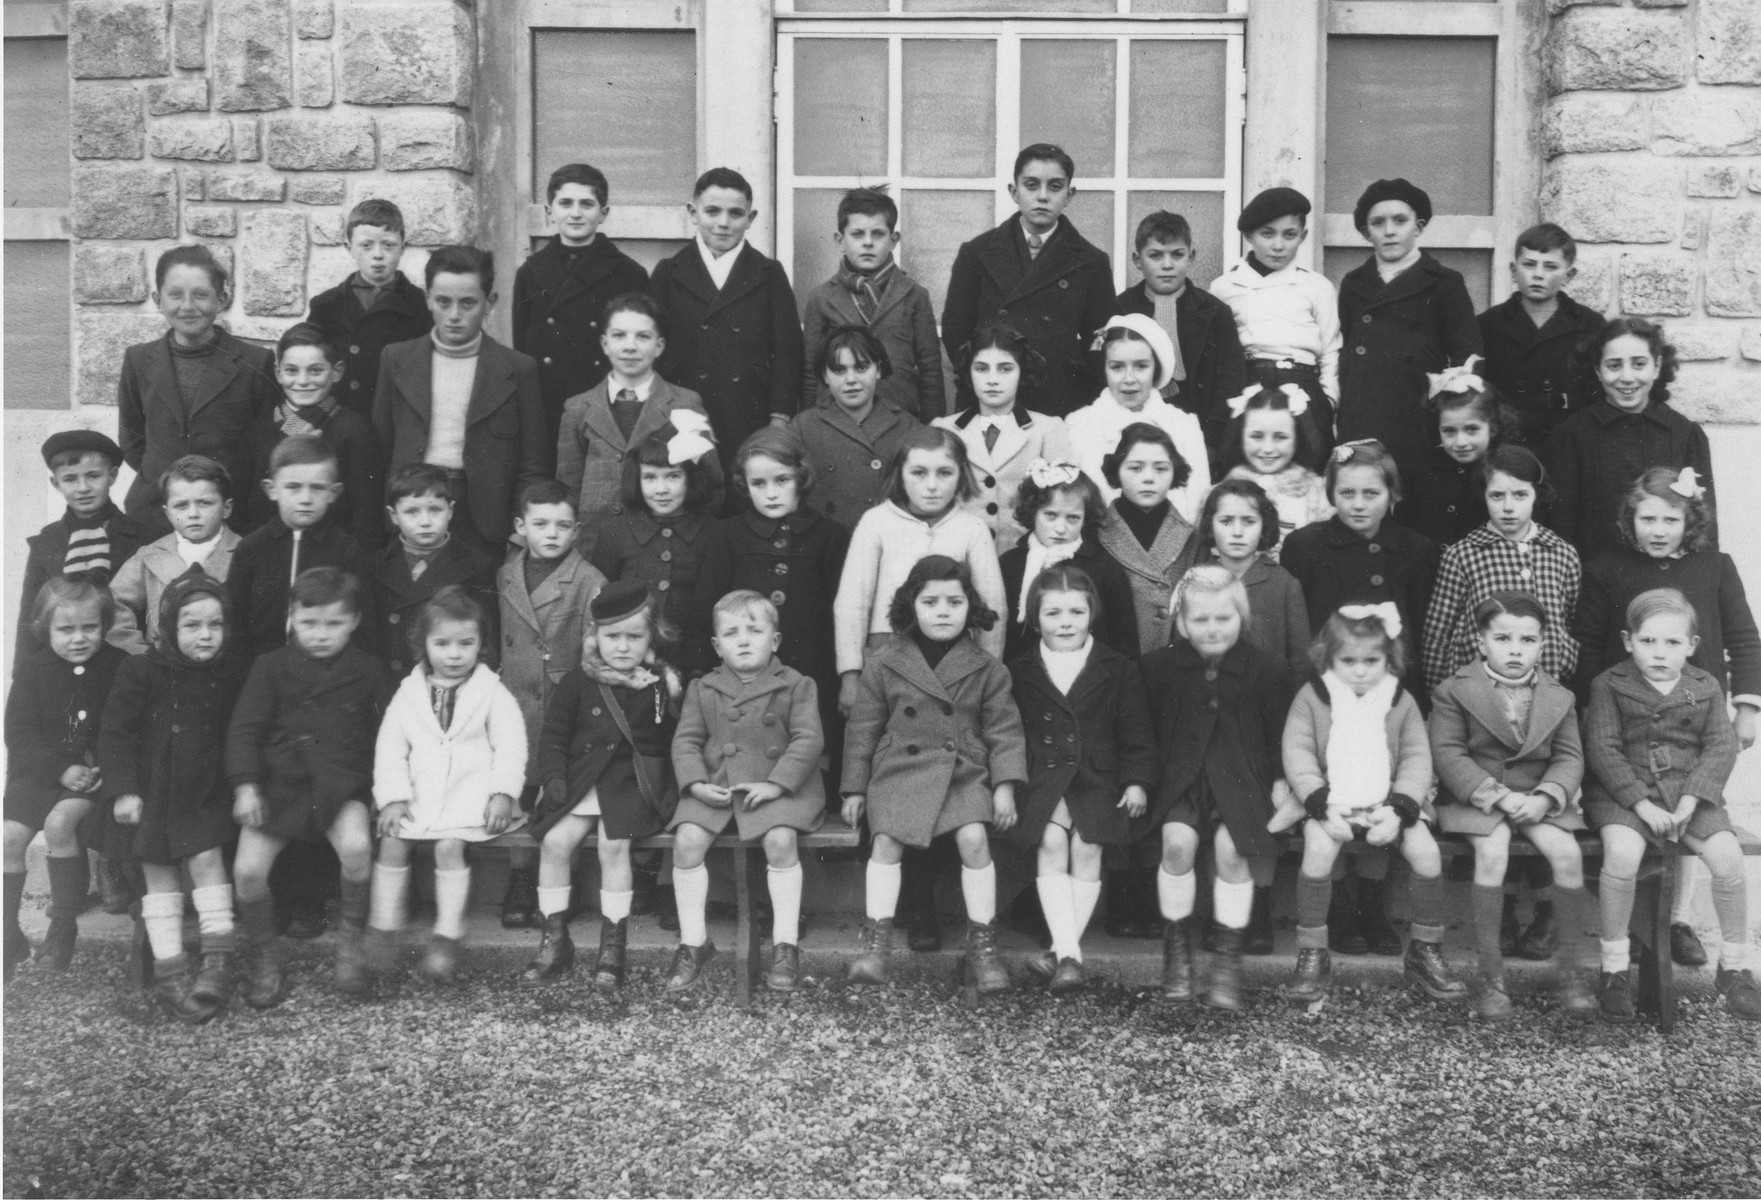 Ruth Zarnicer (third row from the front, far right) poses with her classmates in the Jeanne d'Arc convent school, where she was hiding under the name Rene Latti.